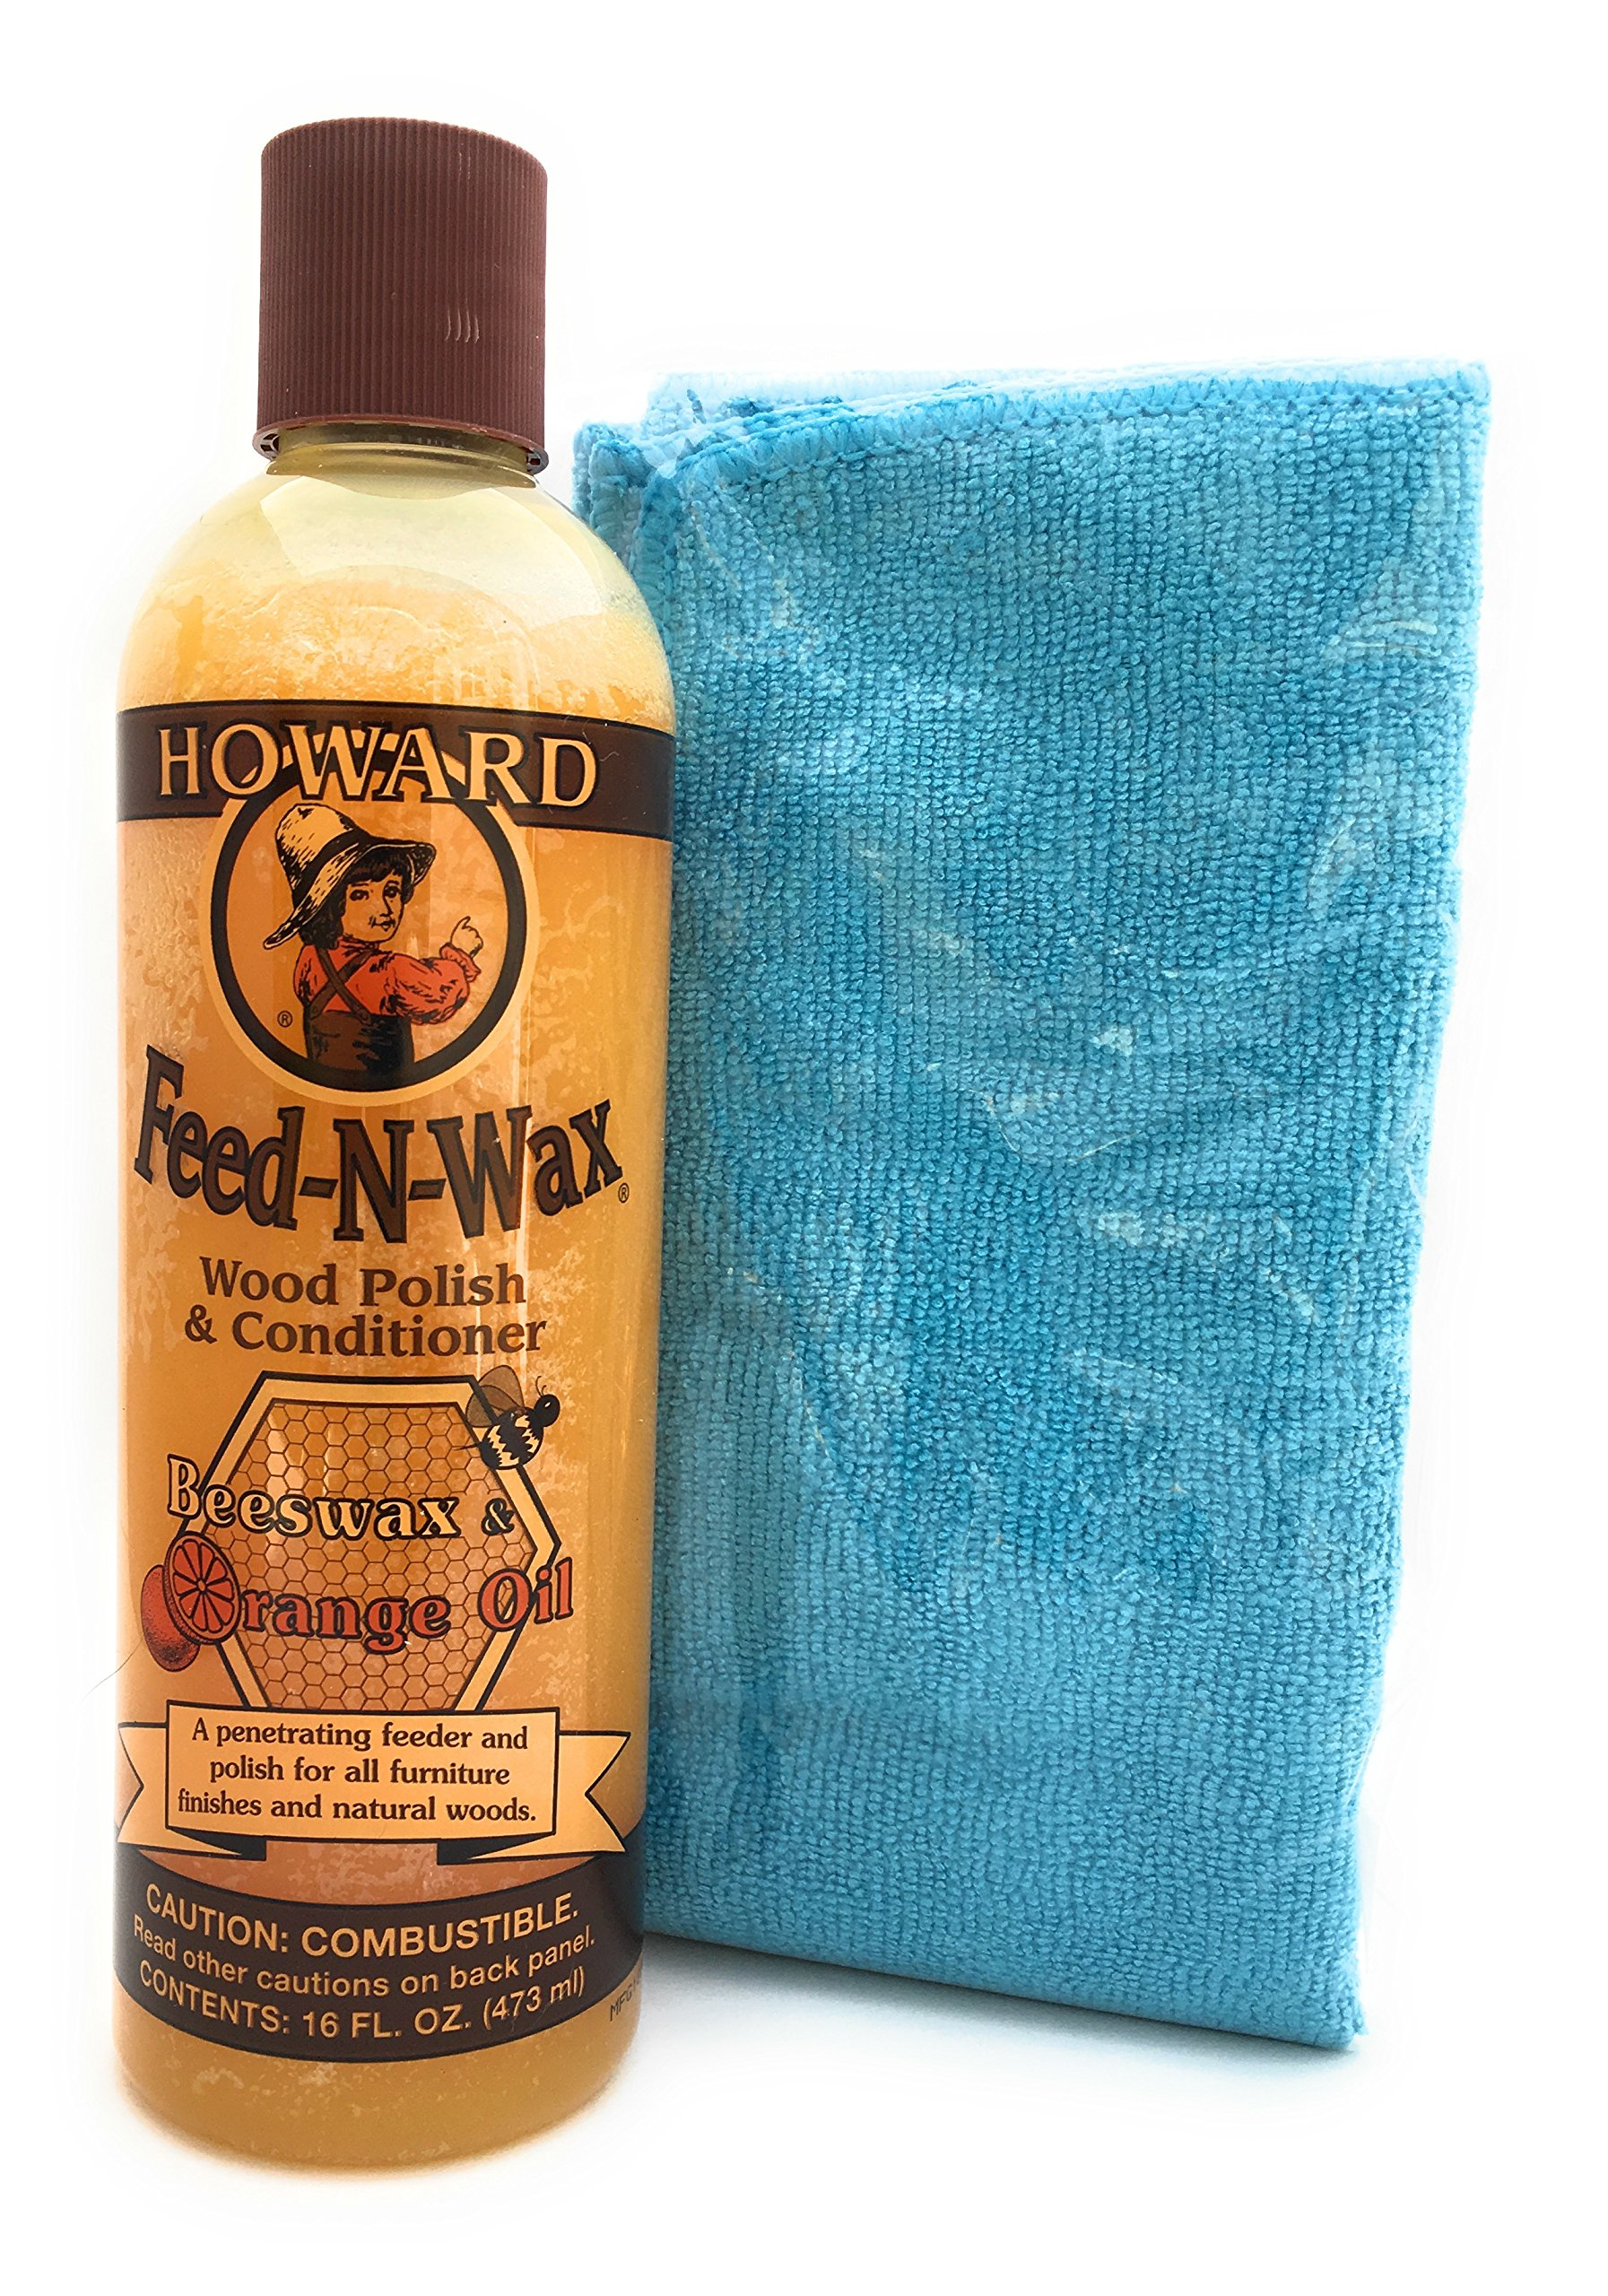 Howard Feed-N-Wax All Natural Wood Polish and Conditioner with Microfiber Cloth (Blue)